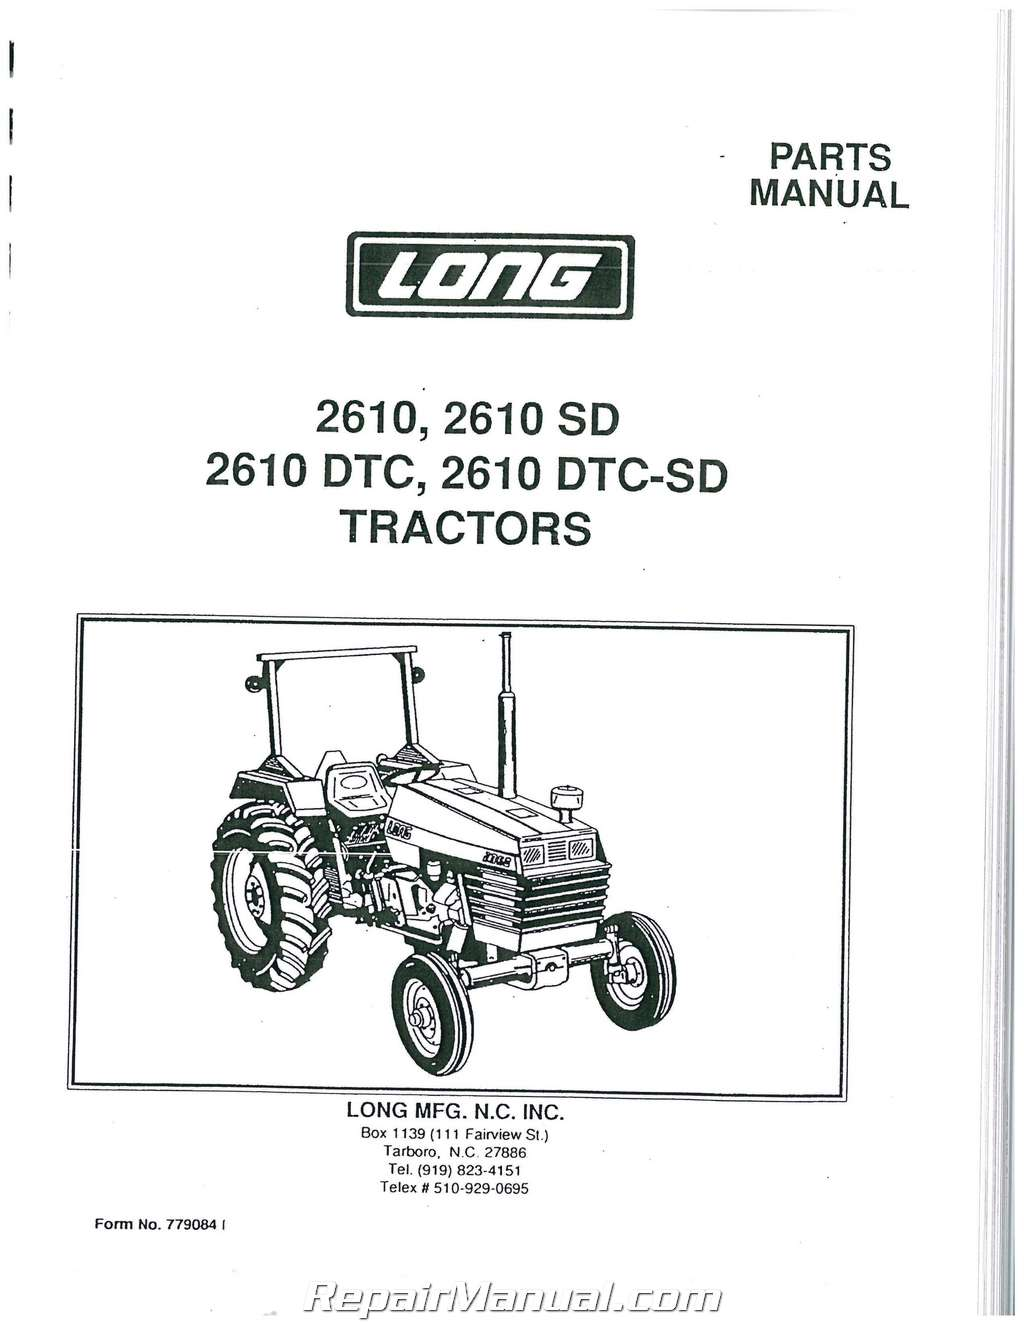 Find The Right Tractor Package For You Manual Guide